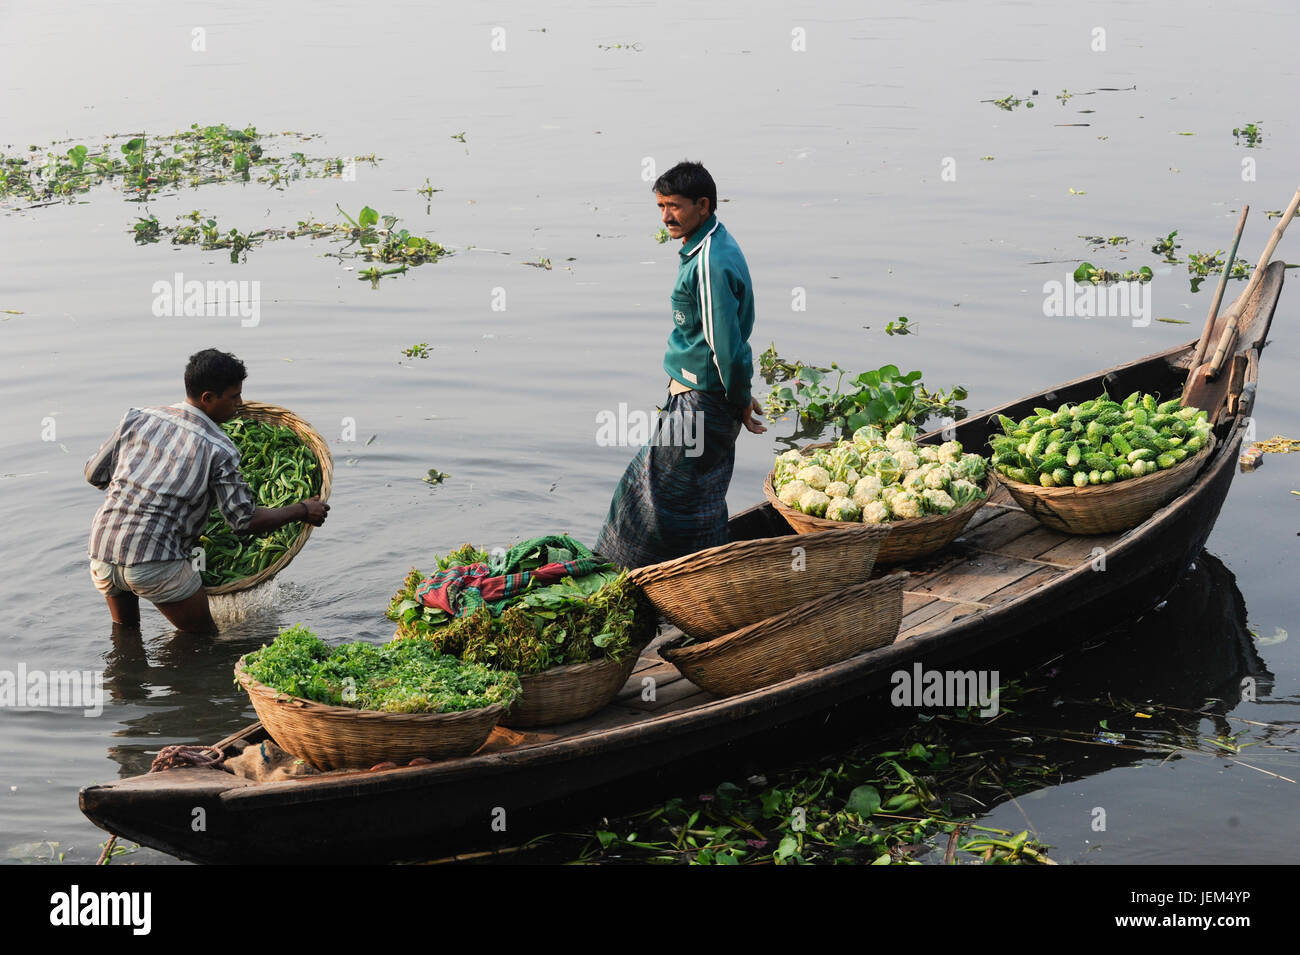 BANGLADESH Dhaka, Buriganga River, boats transport fresh vegetables from village to city / BANGLADESCH Dhaka, Boote - Stock Image